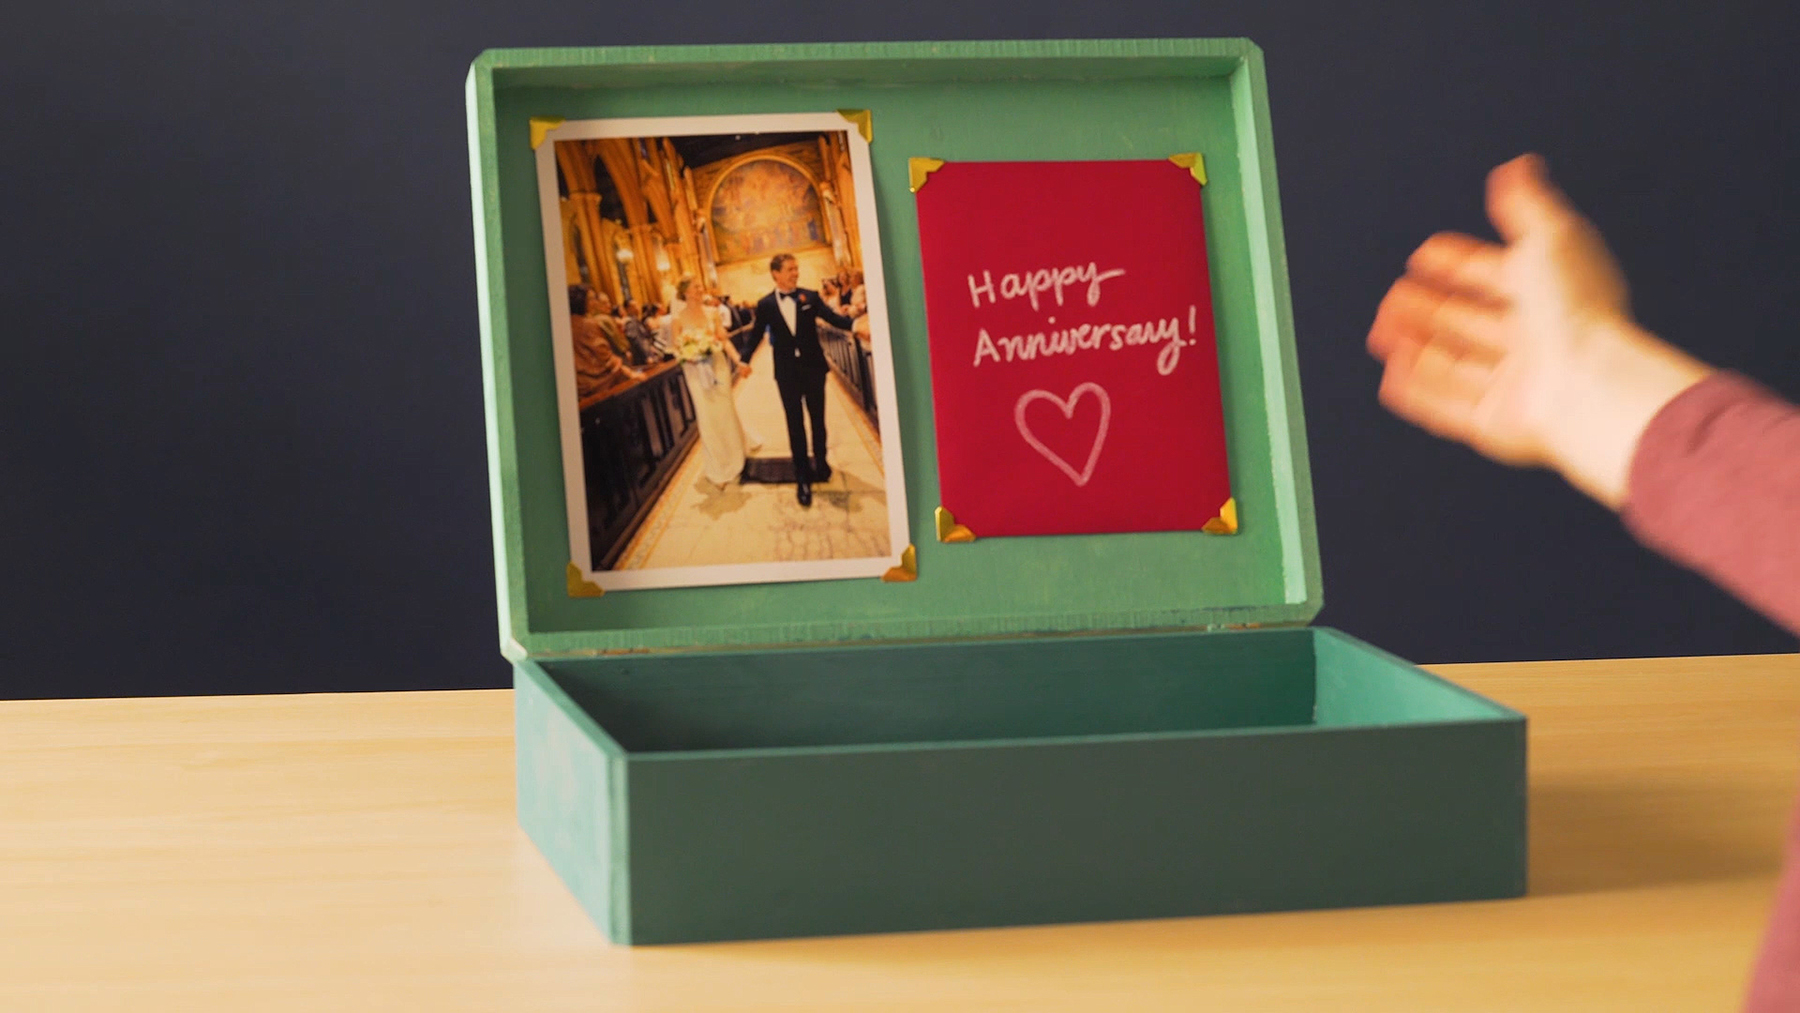 3 Meaningful Gift Ideas for Birthdays or Anniversaries & Anniversary Gift Ideas | Real Simple